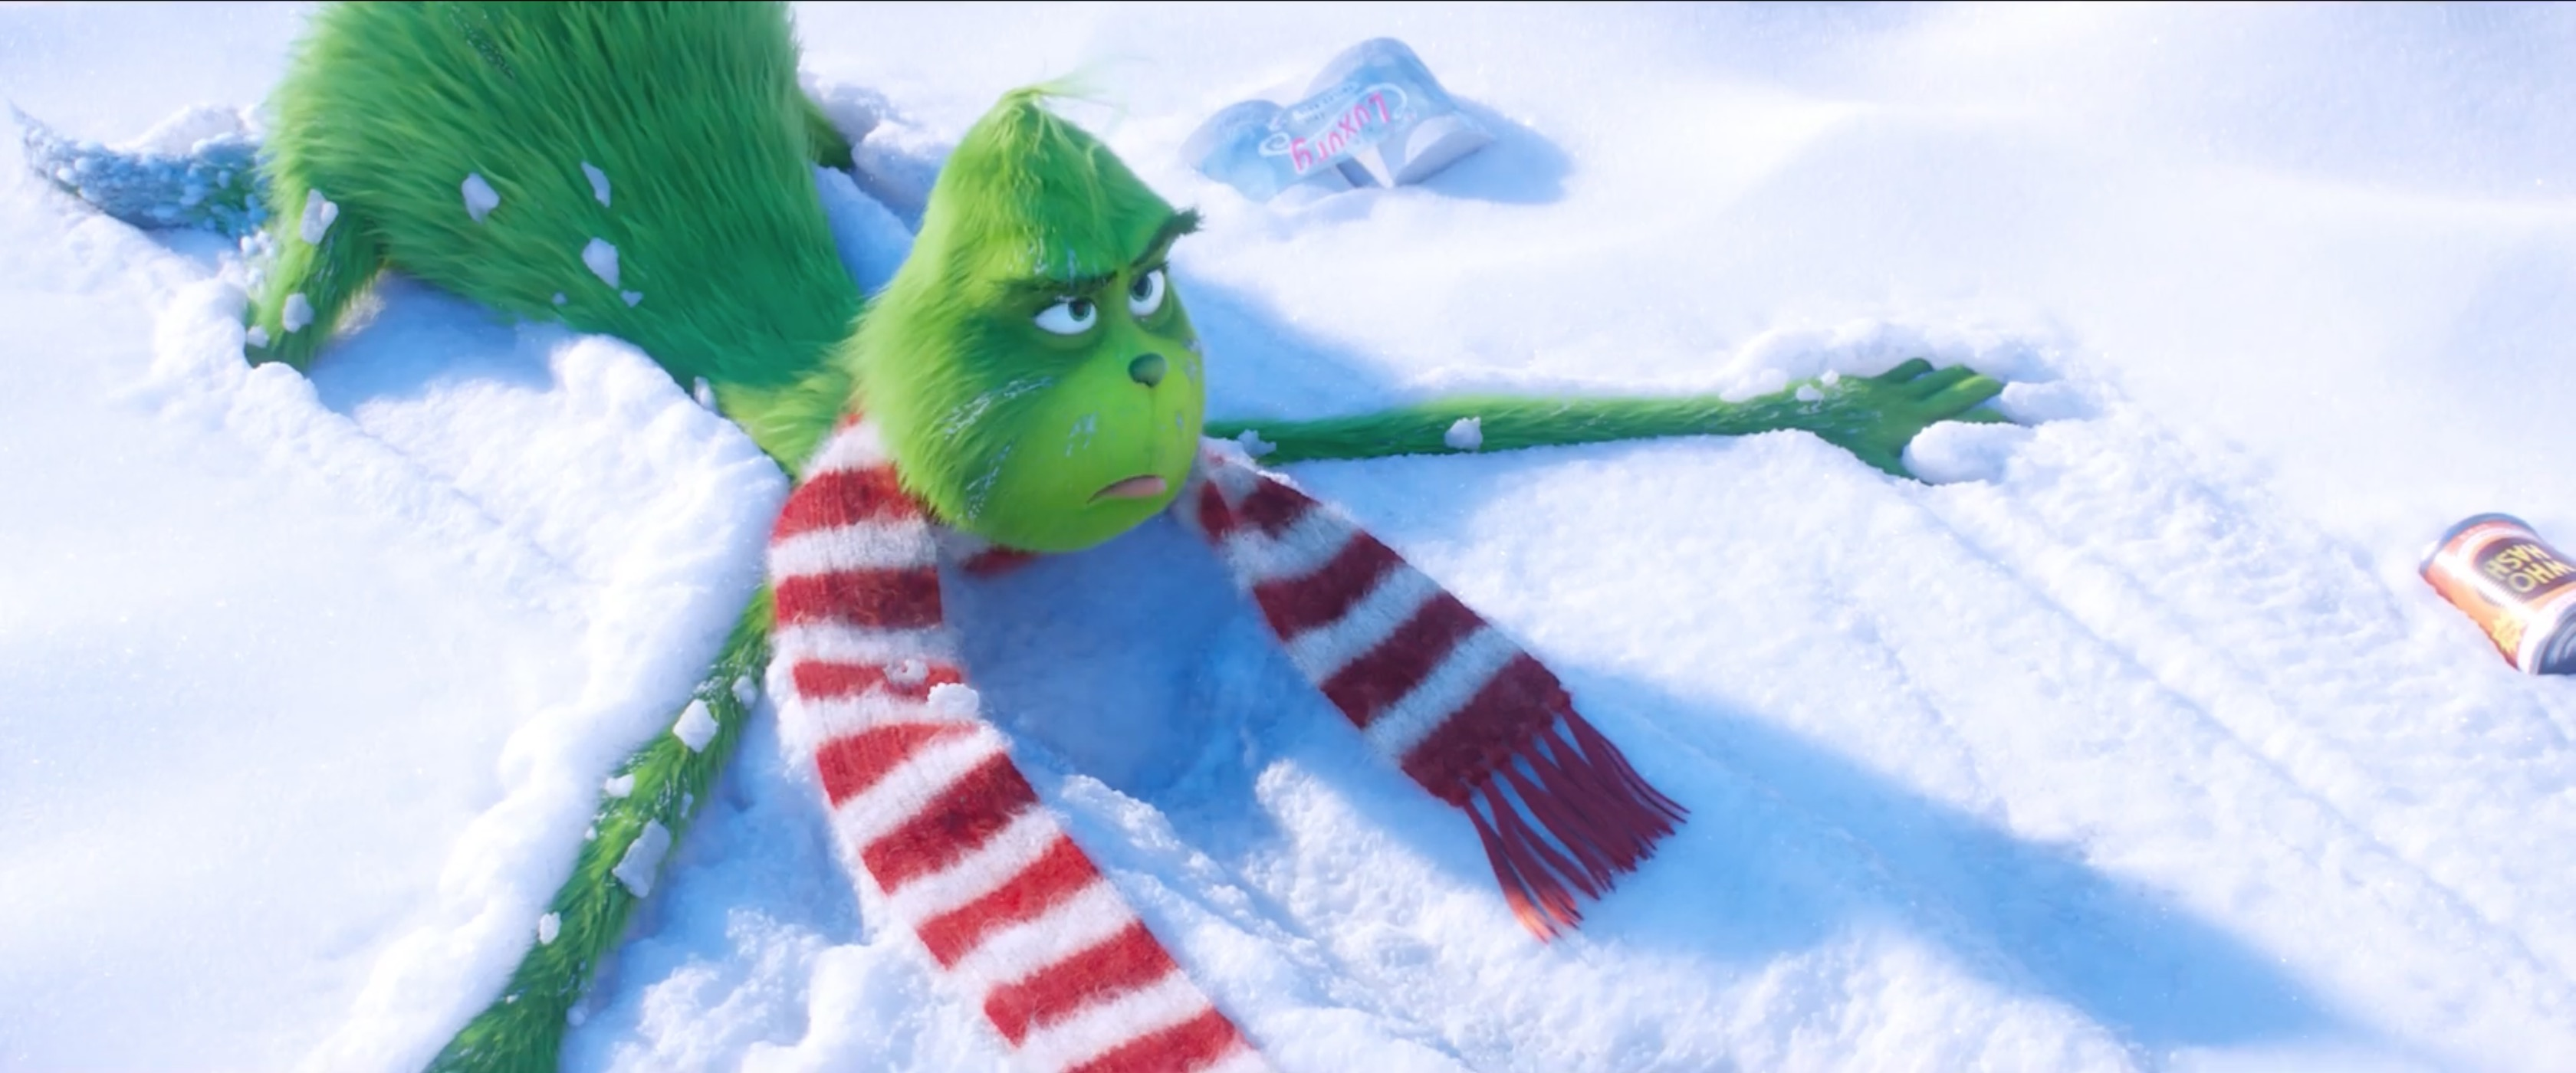 Illumination The Grinch: New Official Trailer